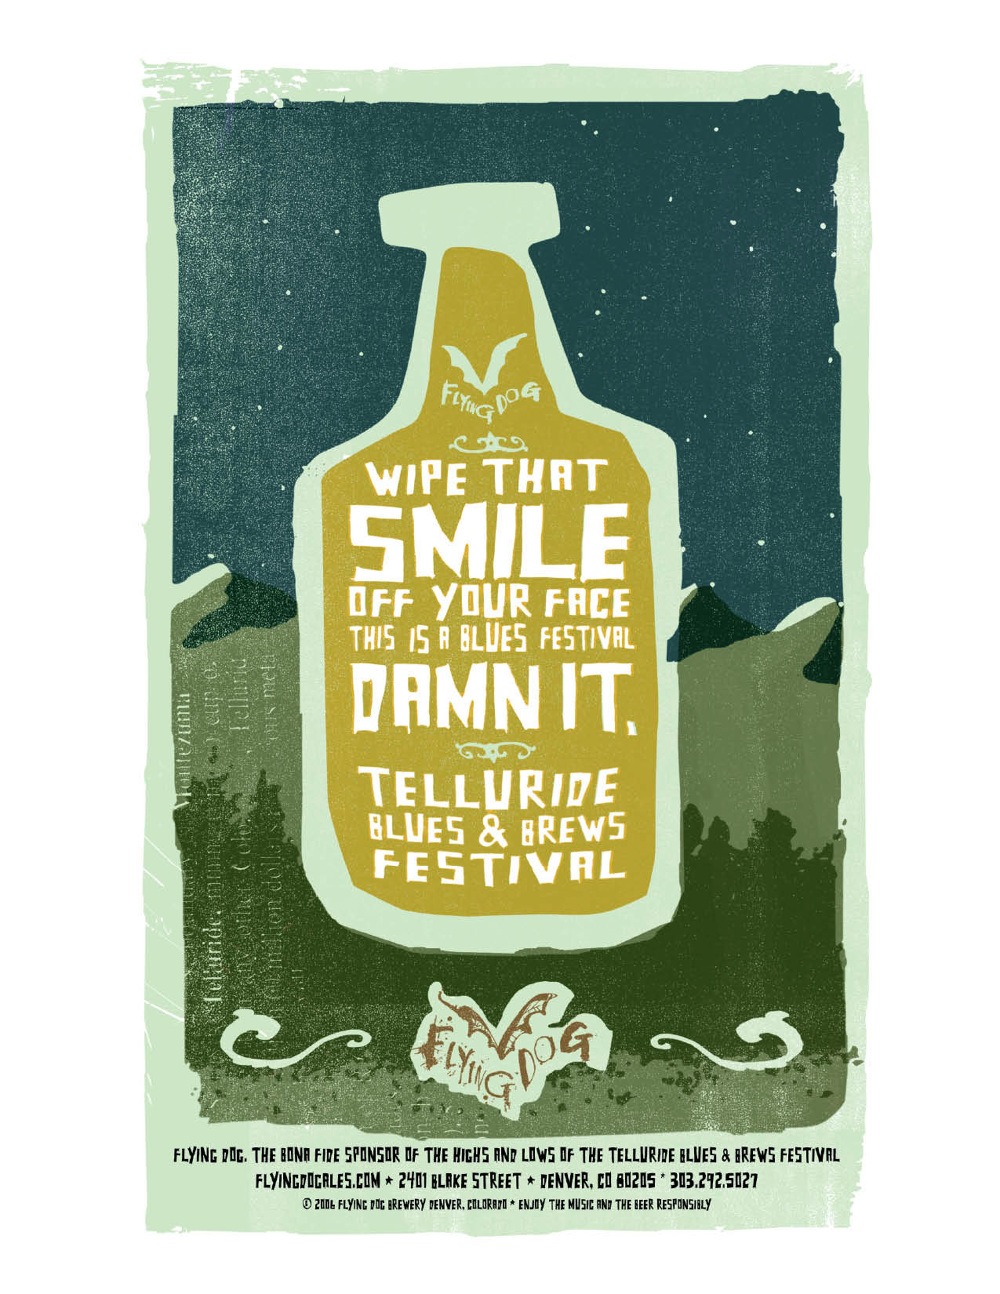 Flying Dog Brewery  was the title sponsor of the Telluride Blues and Brews Festival